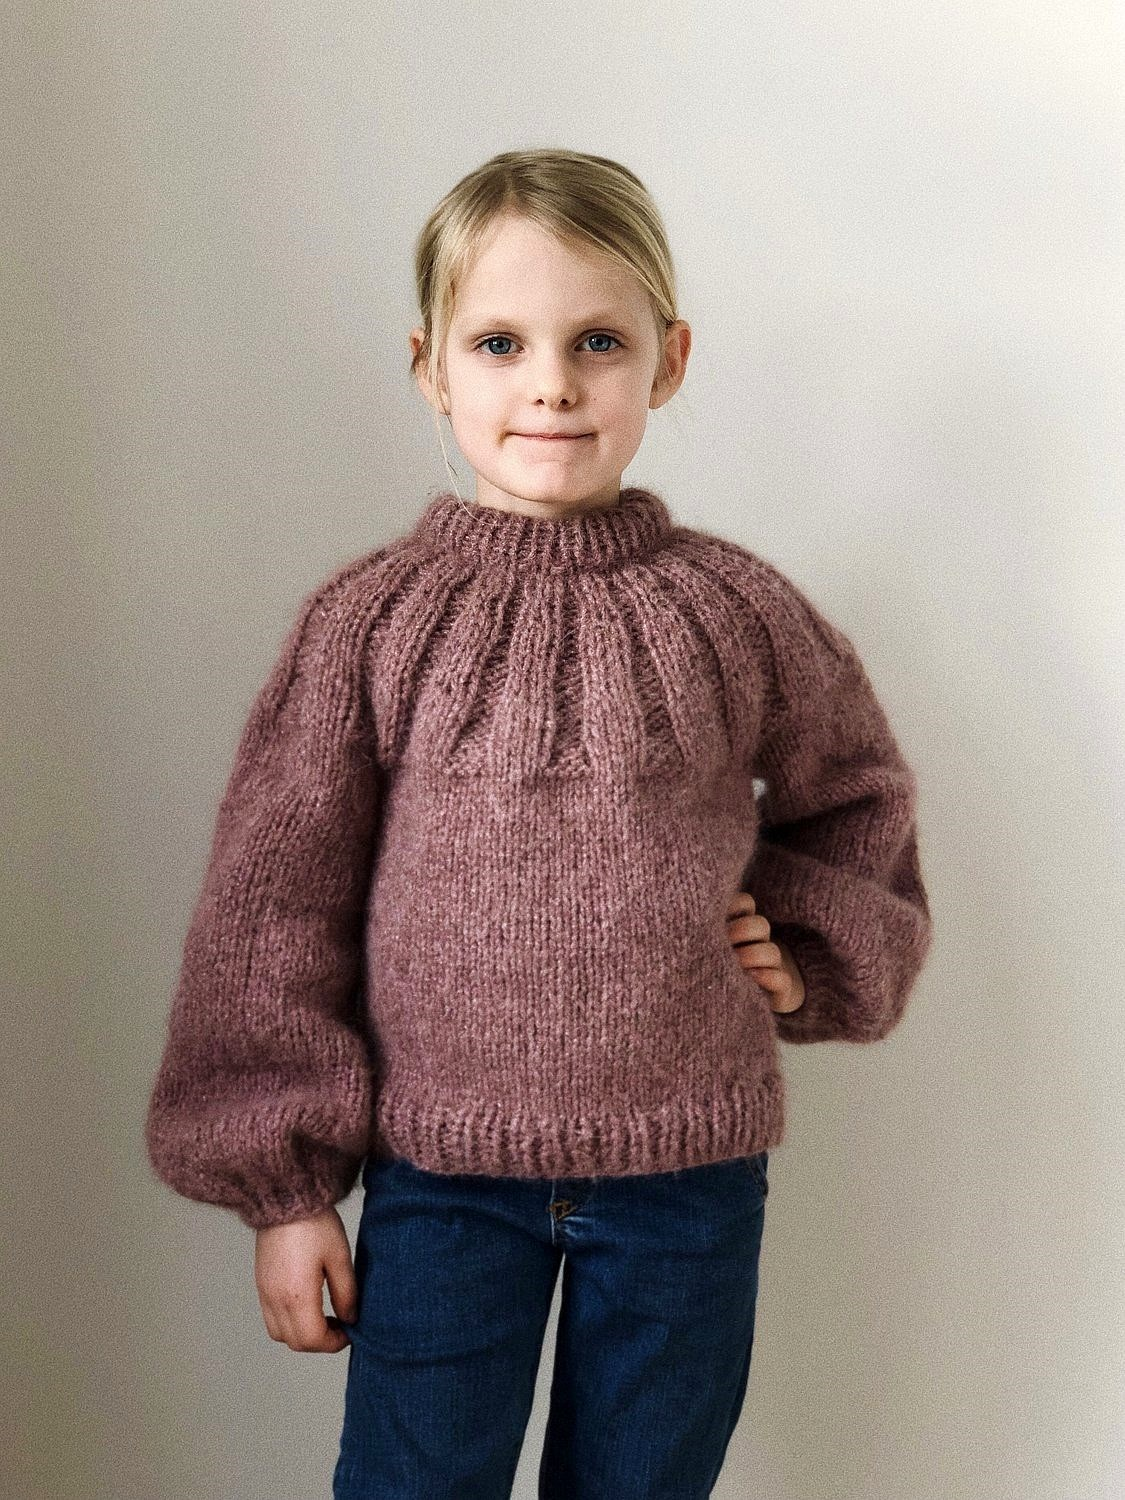 Sunday Sweater Junior strikkes i Snefnug fra CaMaRose